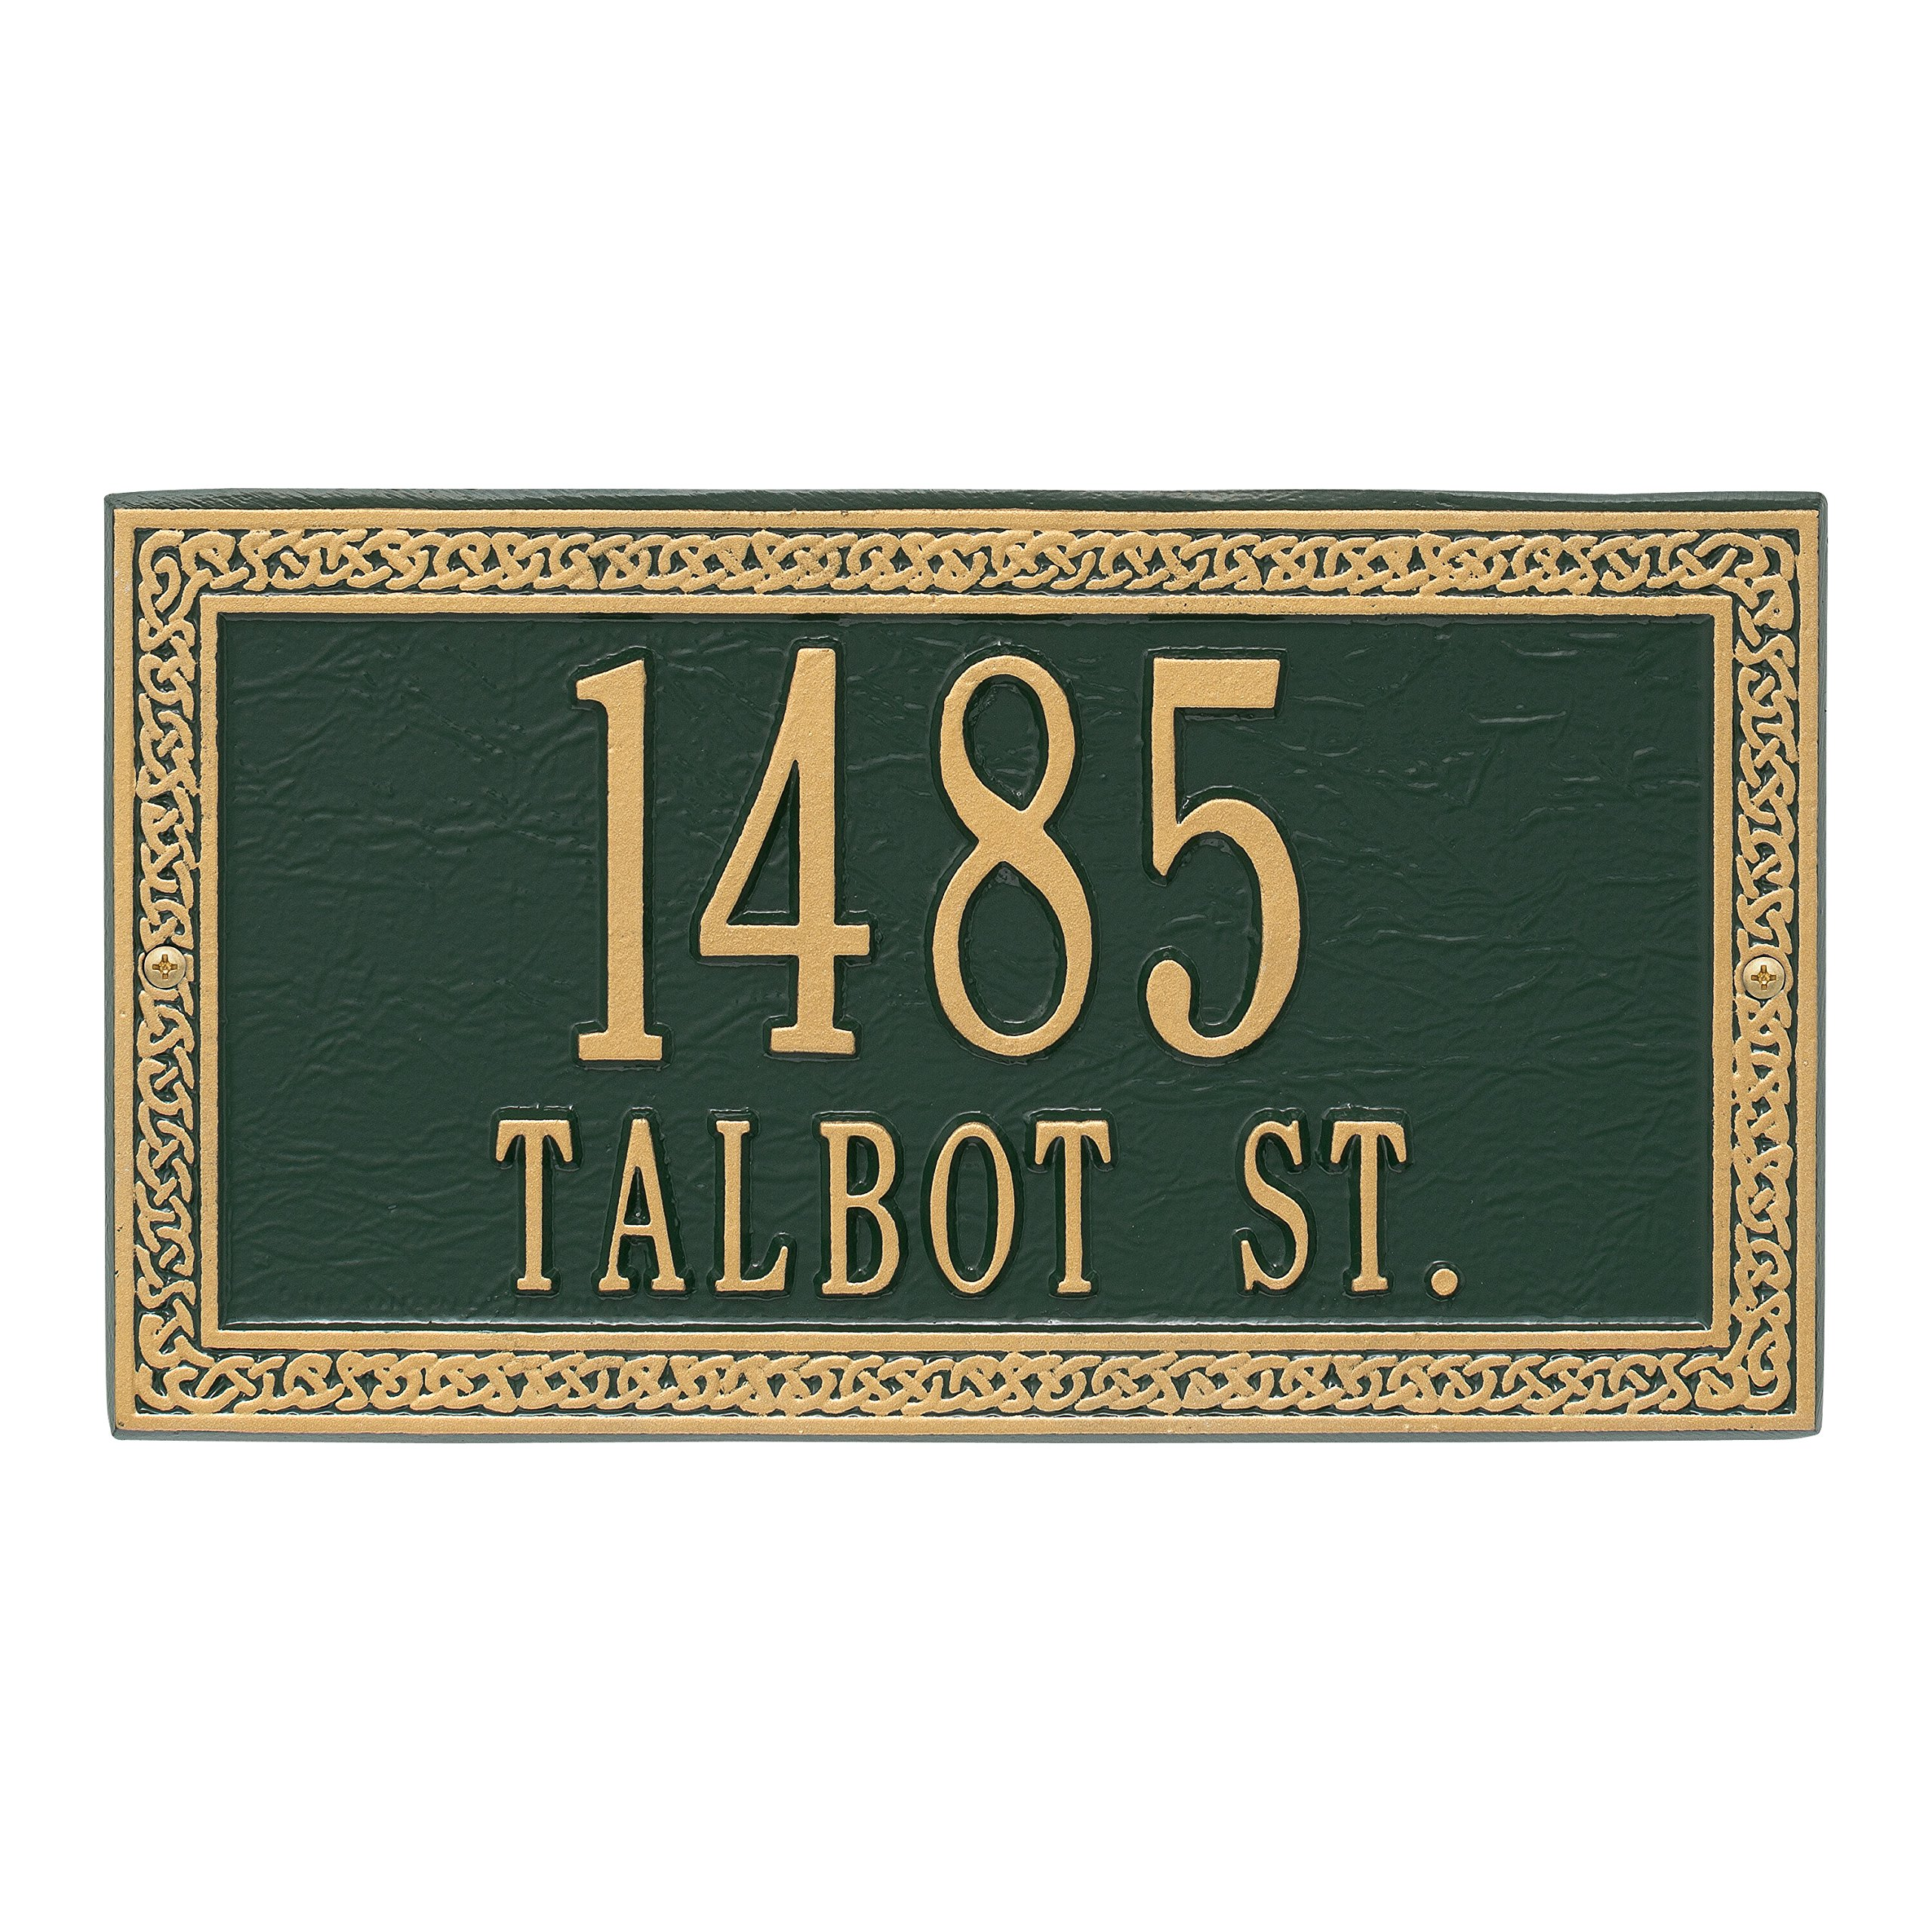 Whitehall Personalized Indoor/Outdoor Cast Irish Celtic Cornerstone Address Plaque Sign with House Number and Street Name (Green Gold)